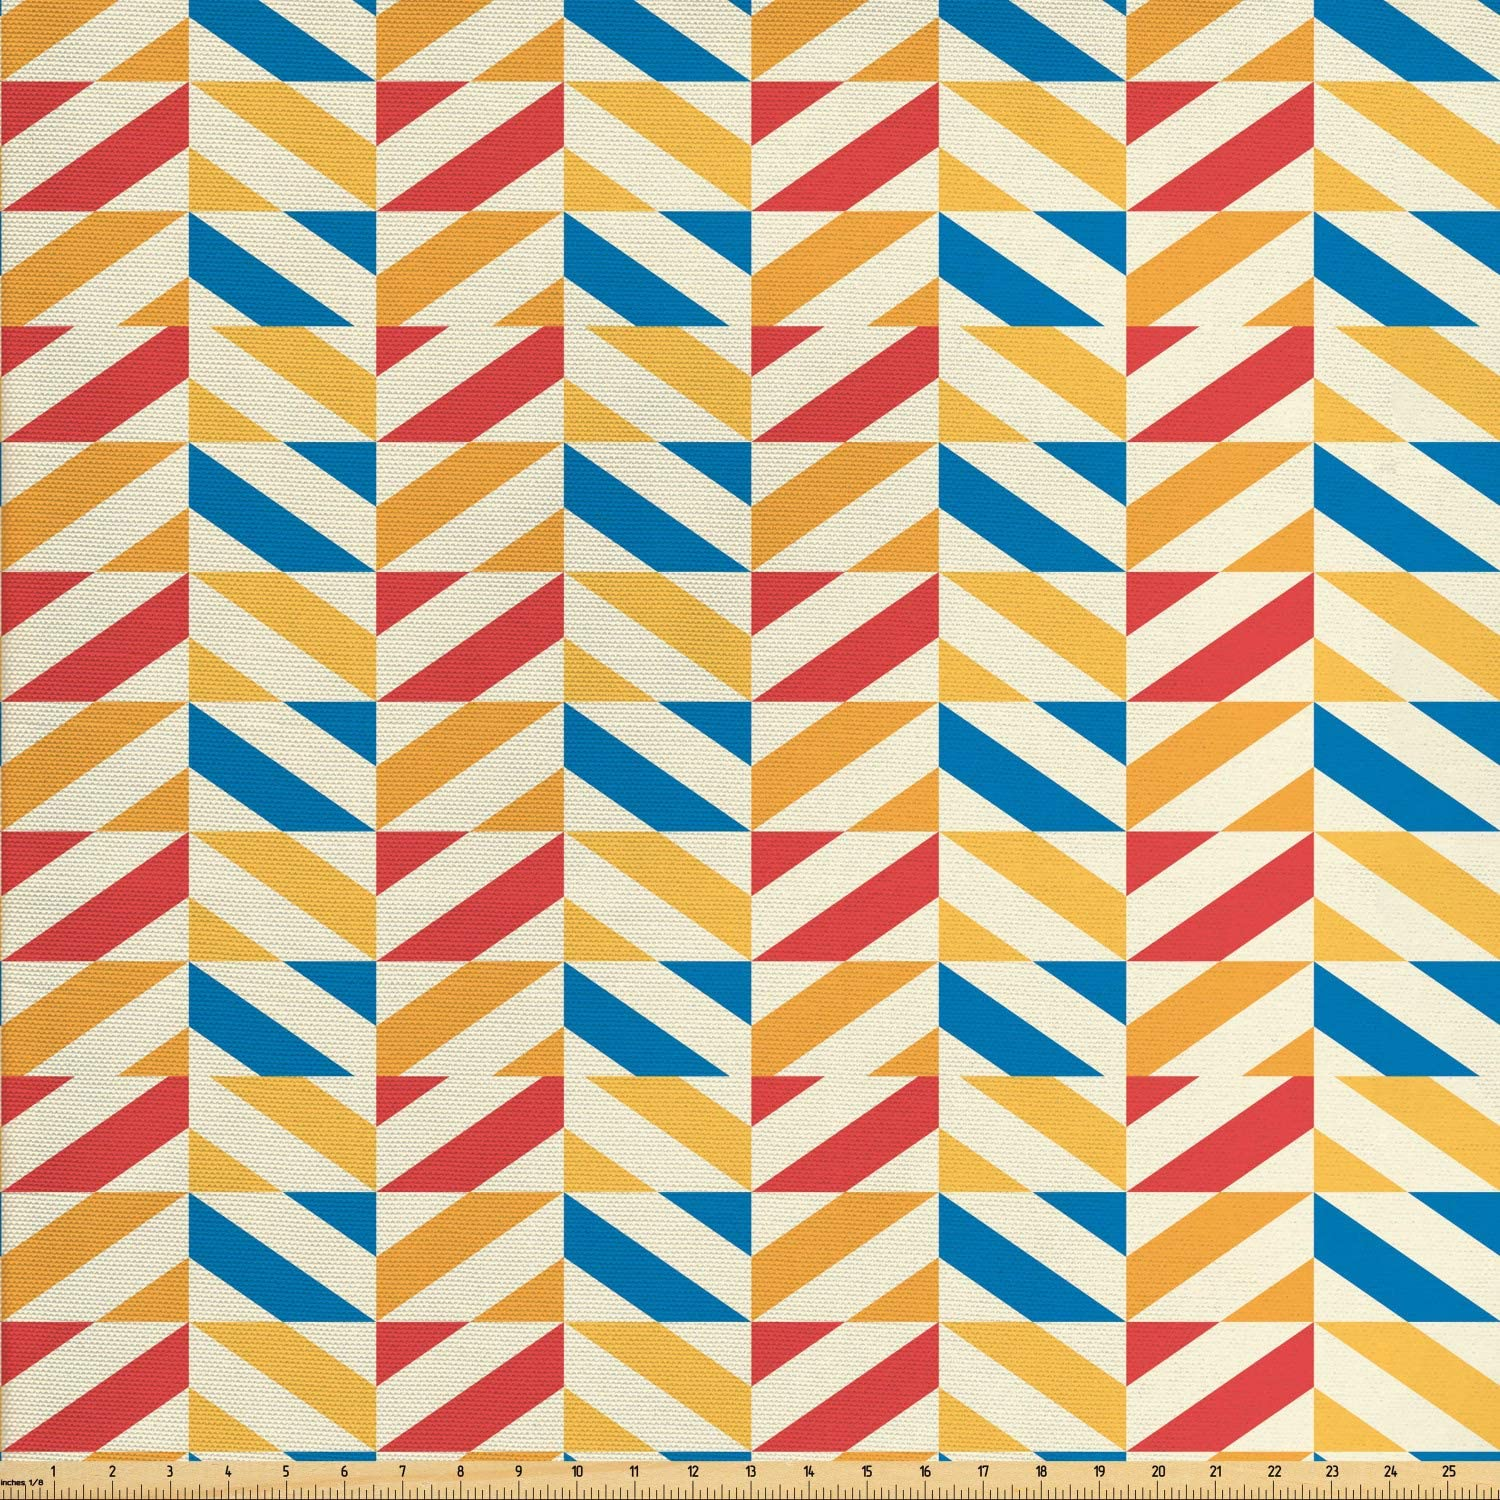 Ambesonne Retro Fabric by The Yard, Checkered Pattern with Shabby Colored Diagonally Striped Squares Retro, Decorative Fabric for Upholstery and Home Accents, 1 Yard, Marigold Scarlet